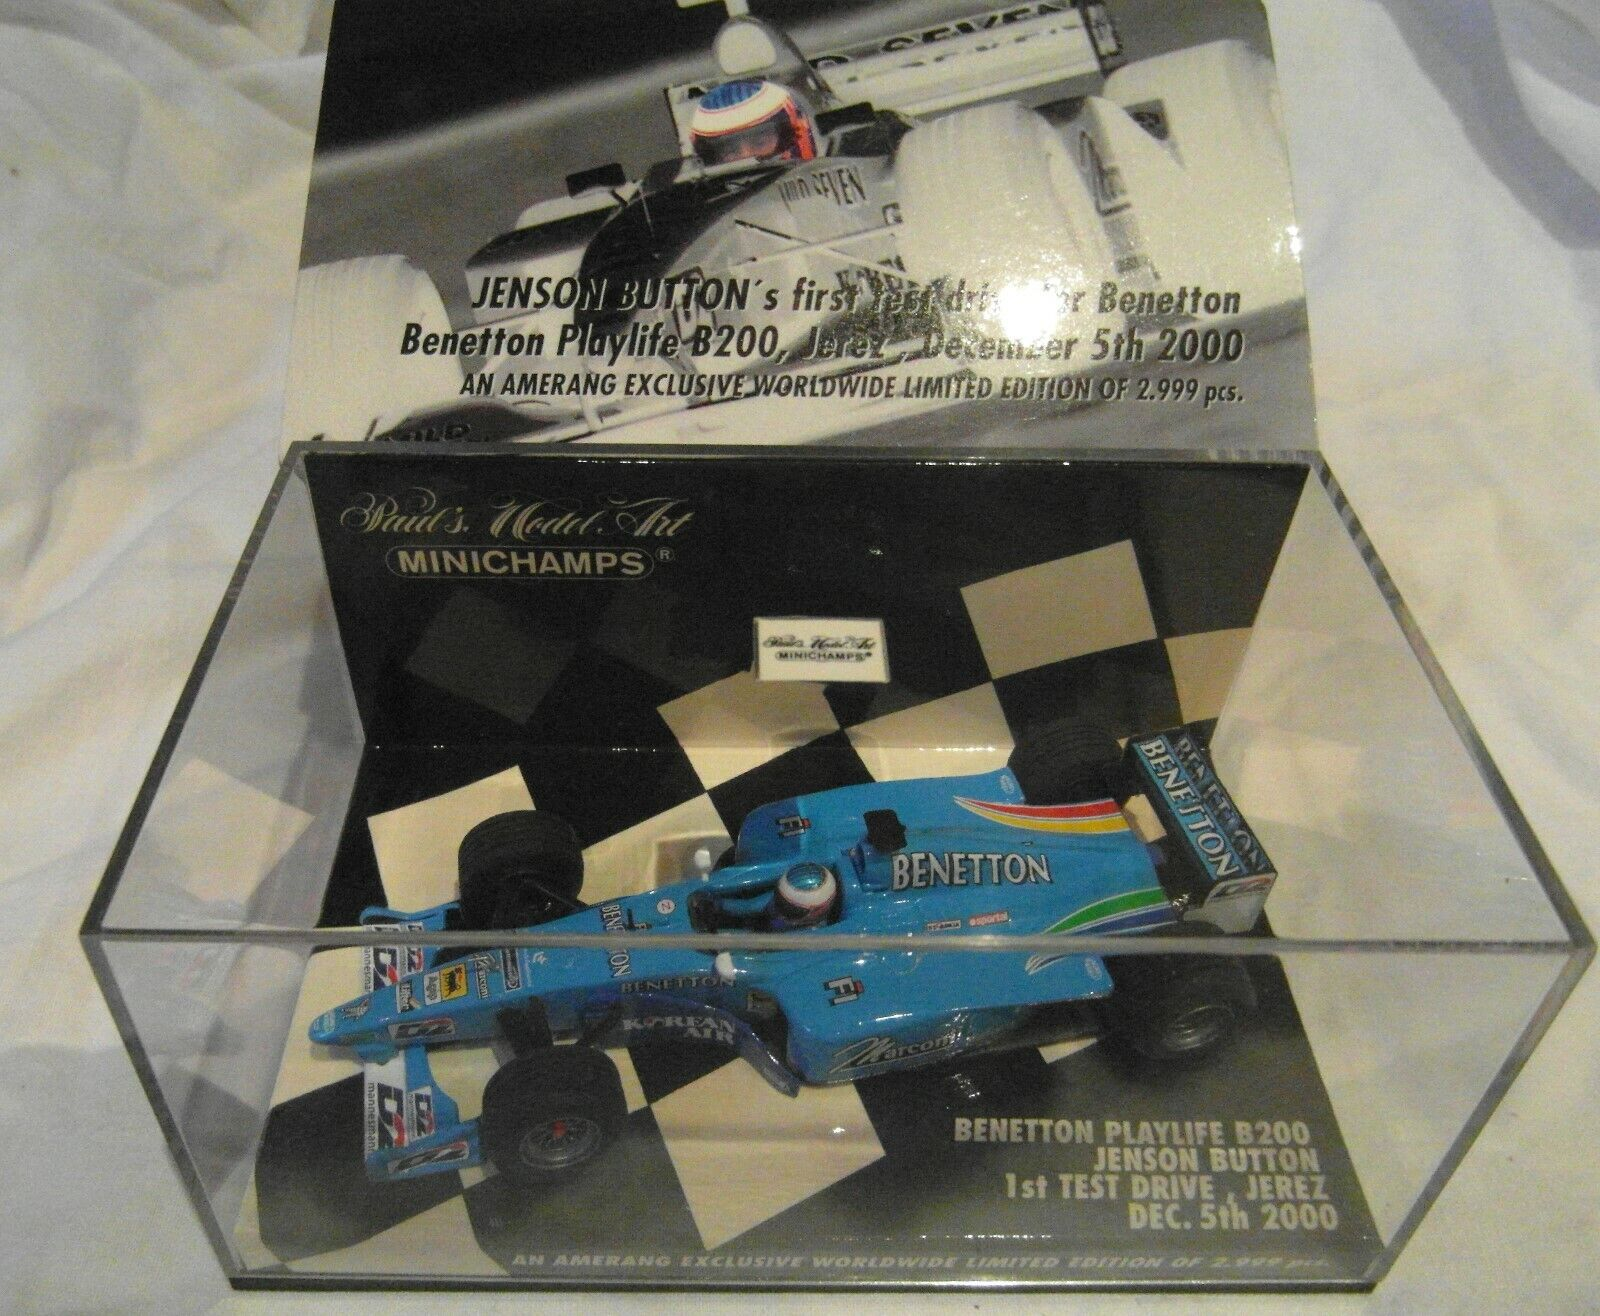 Minichamps 1 43rd 43rd 43rd Benetton Playlife B200 Jenson Button 1st test Drive Jerez 2000 2960b7